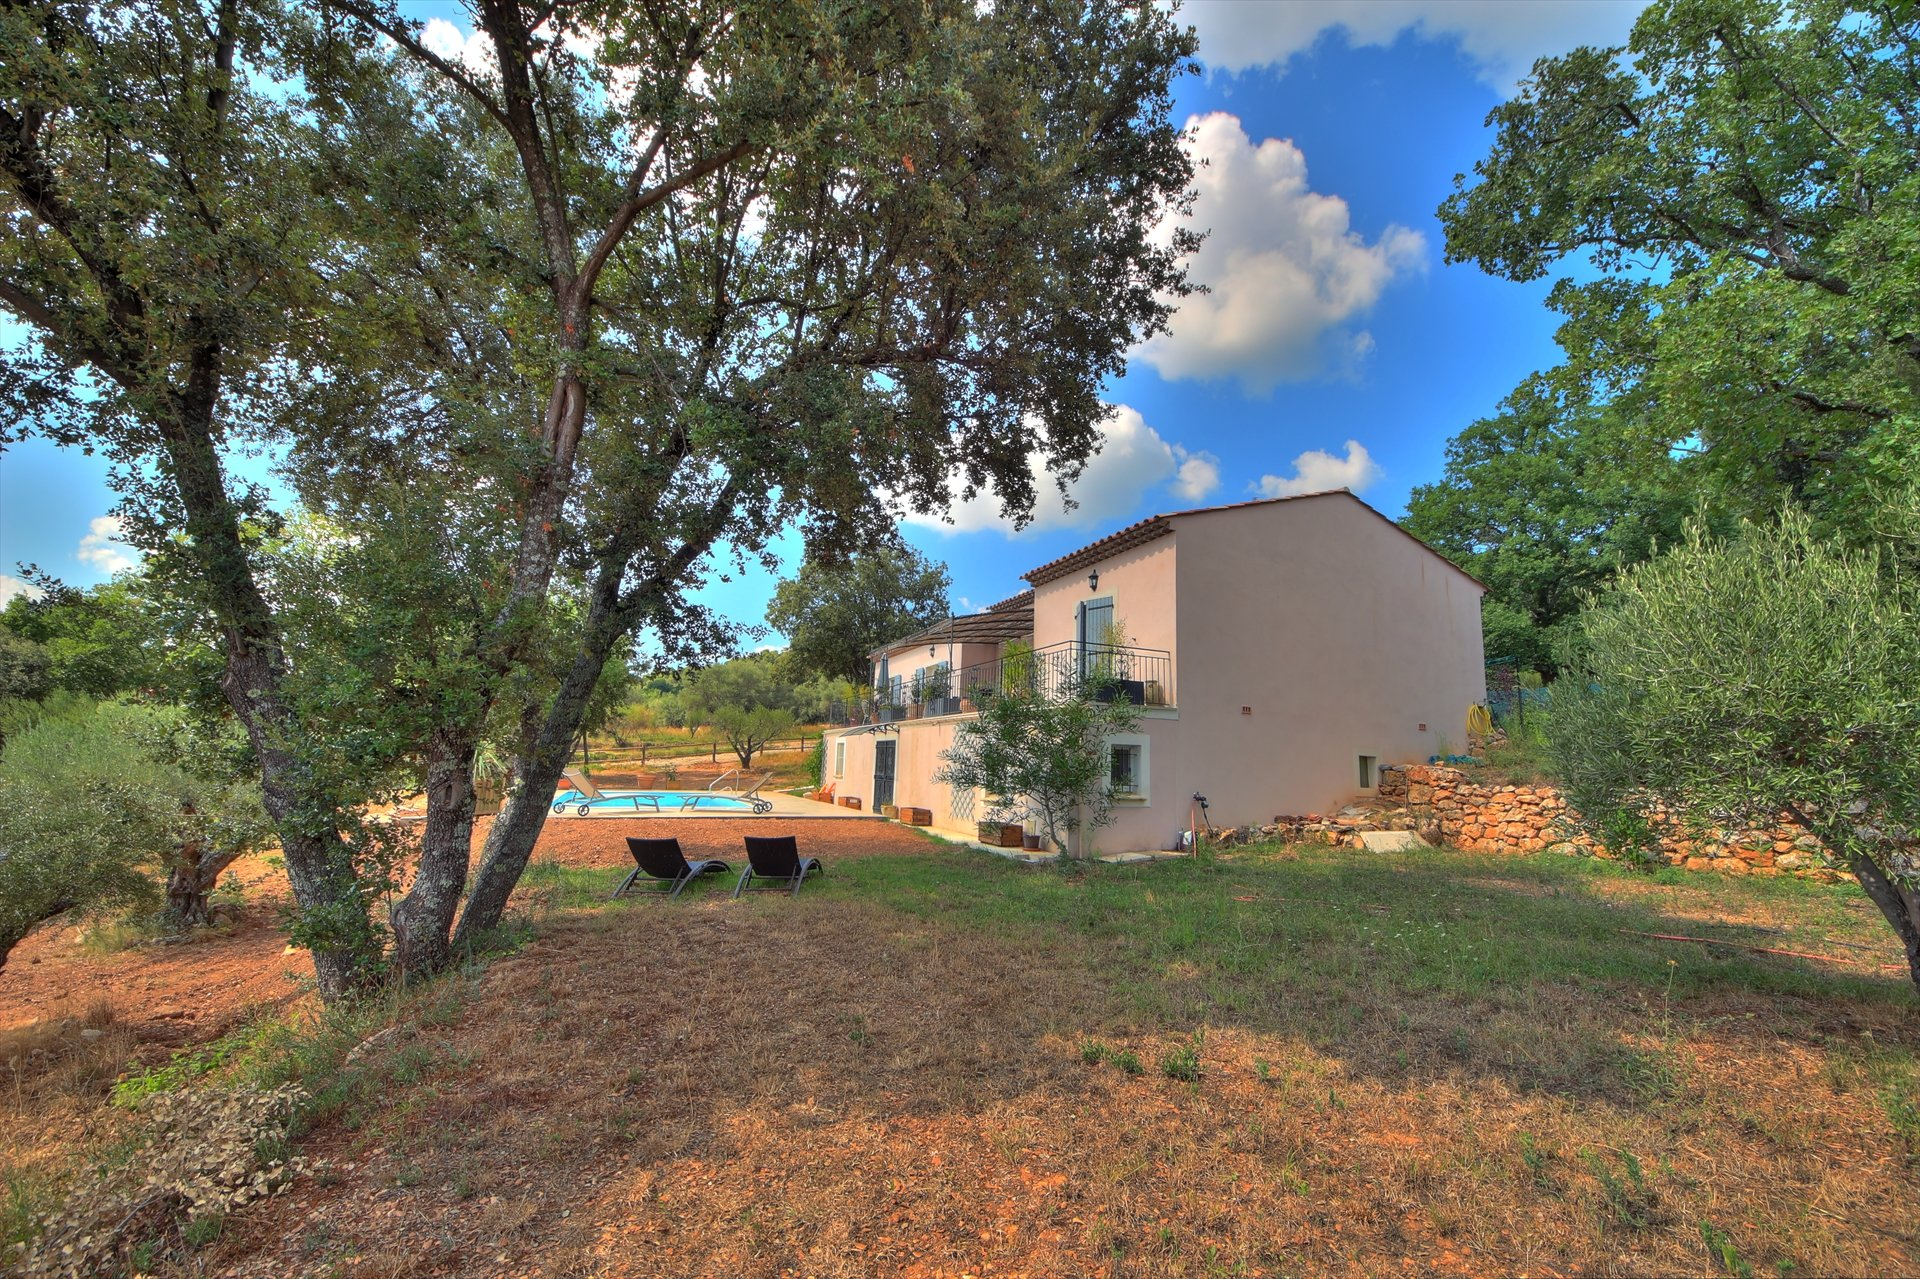 Moissac Bellevue, nice house of 140sqm with terrace and pool